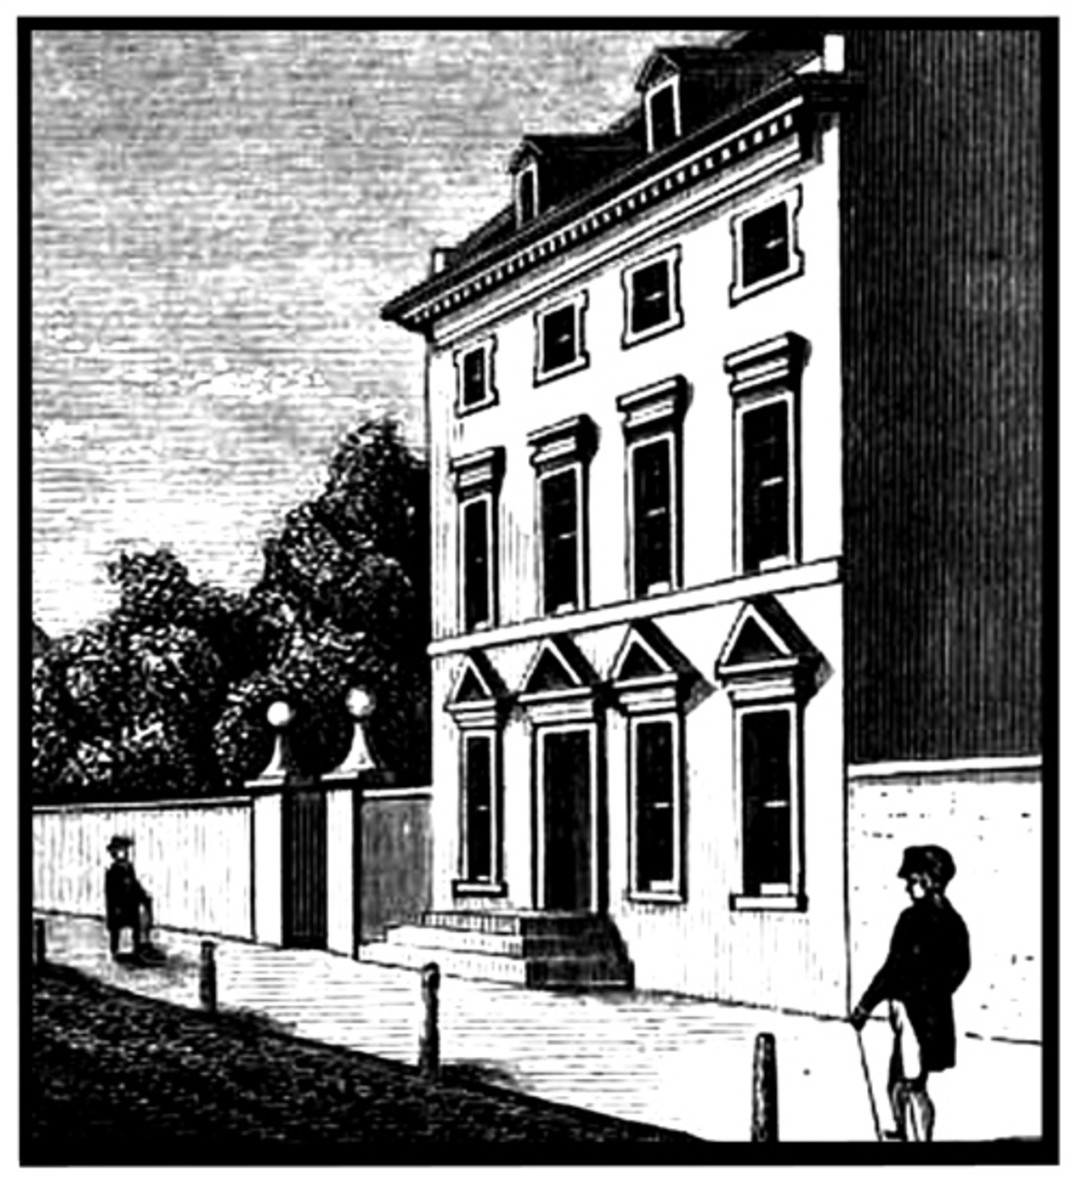 The President's residence in Philadelphia, then capital of the United States.